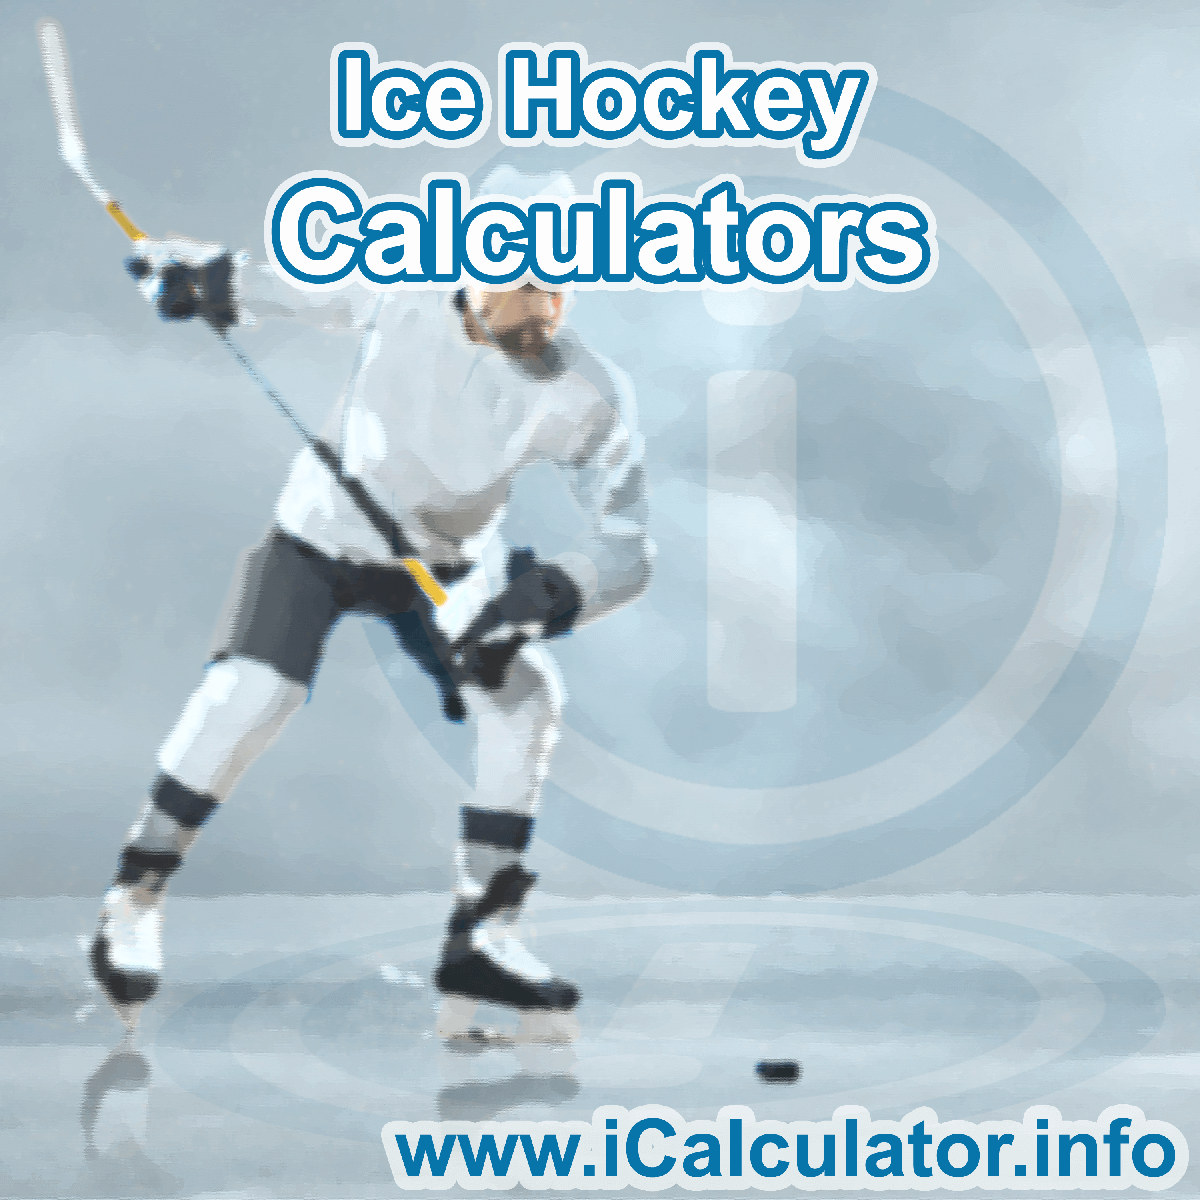 Ice Hockey Calculator. This image shows an Ice Hockey player playing ice hockey - by iCalculator